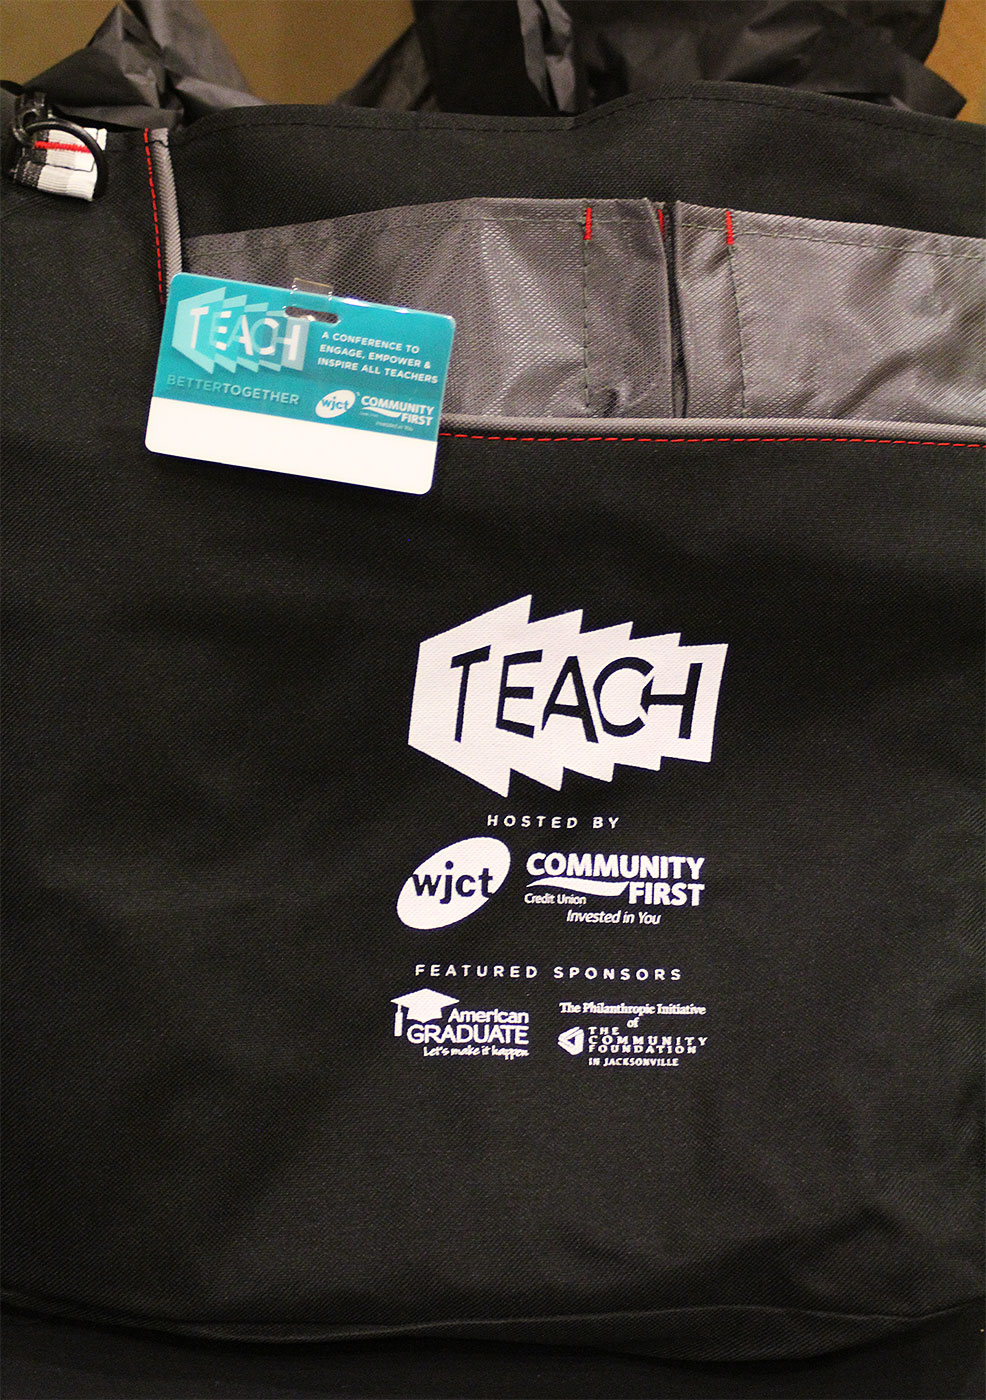 TEACH Conference gift bag and name badge